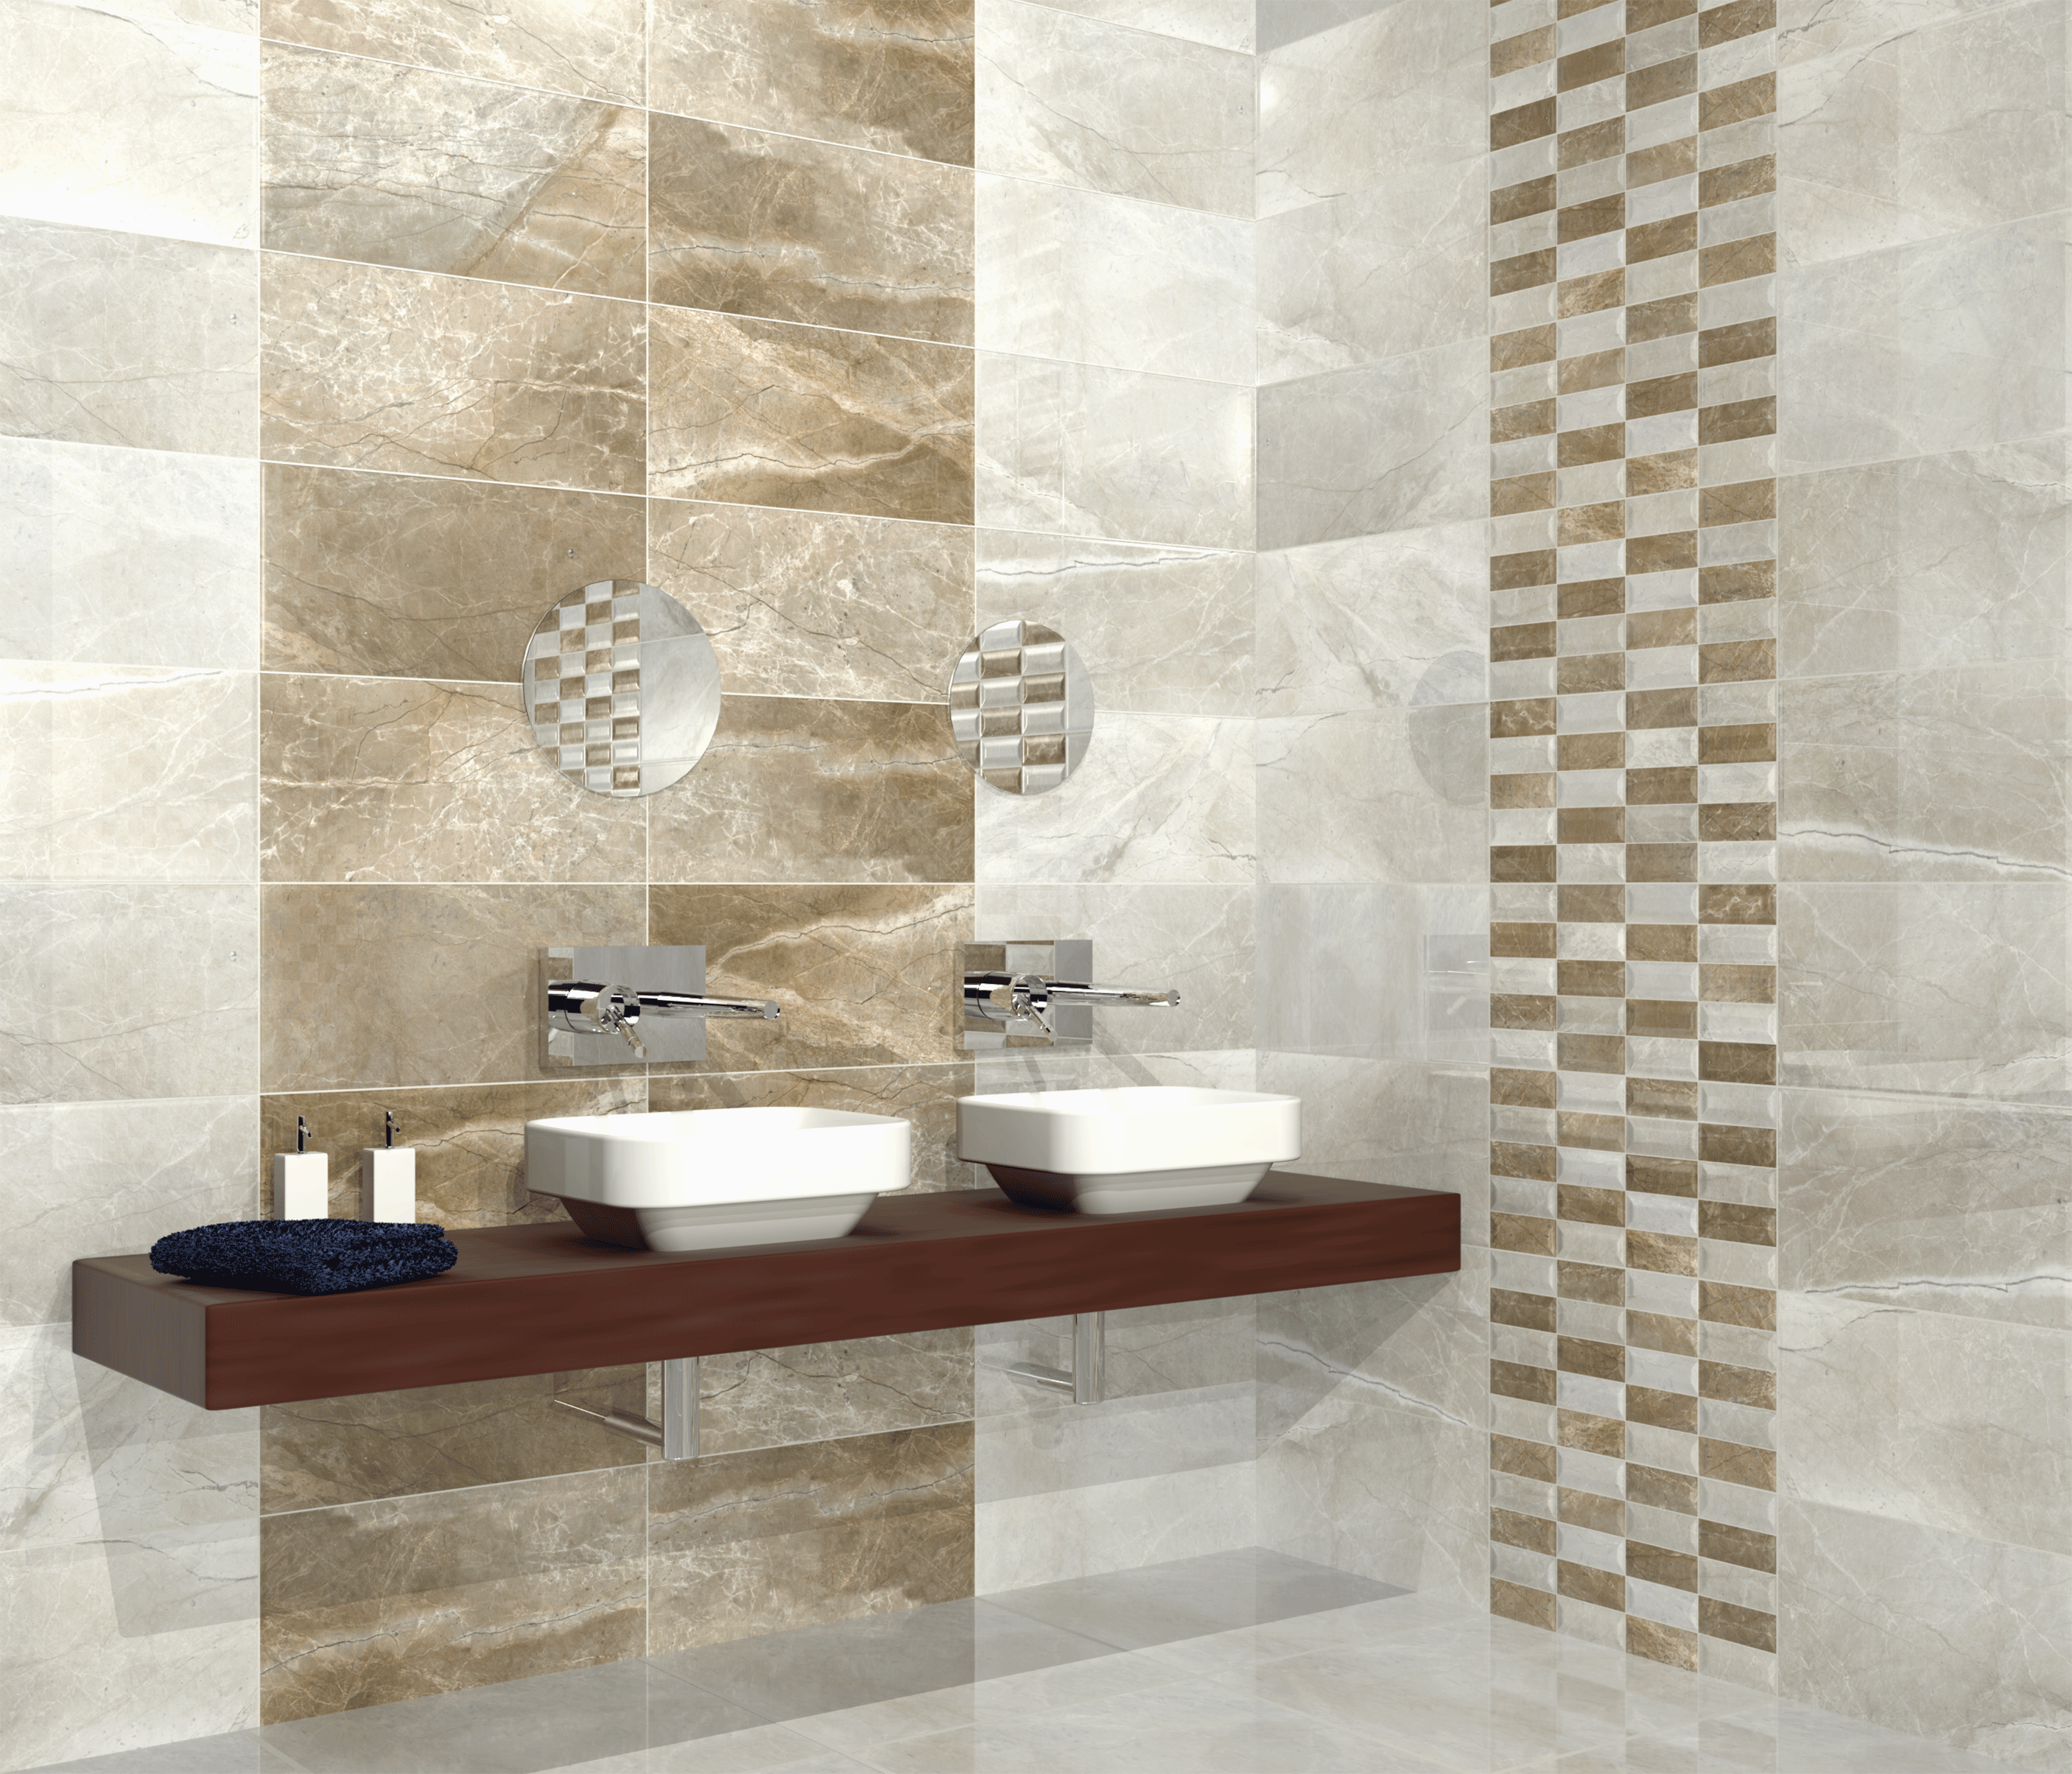 Bathroom Ideas Tiles latest posts under: bathroom wall tile | ideas | pinterest | tiles